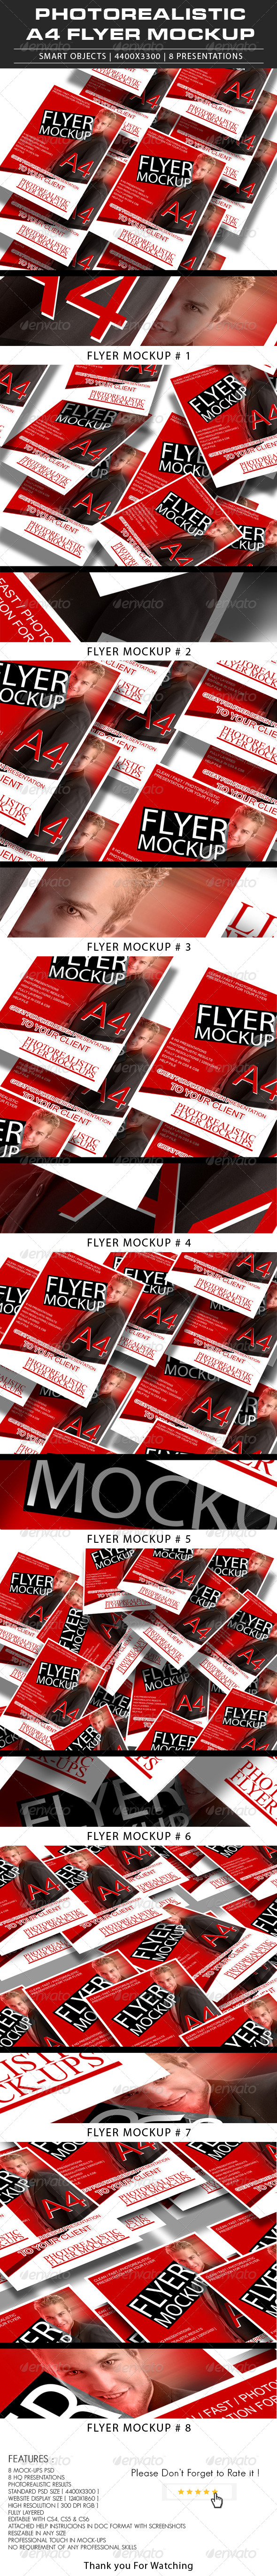 GraphicRiver Photorealistic A4 Flyer Mockup 6994068